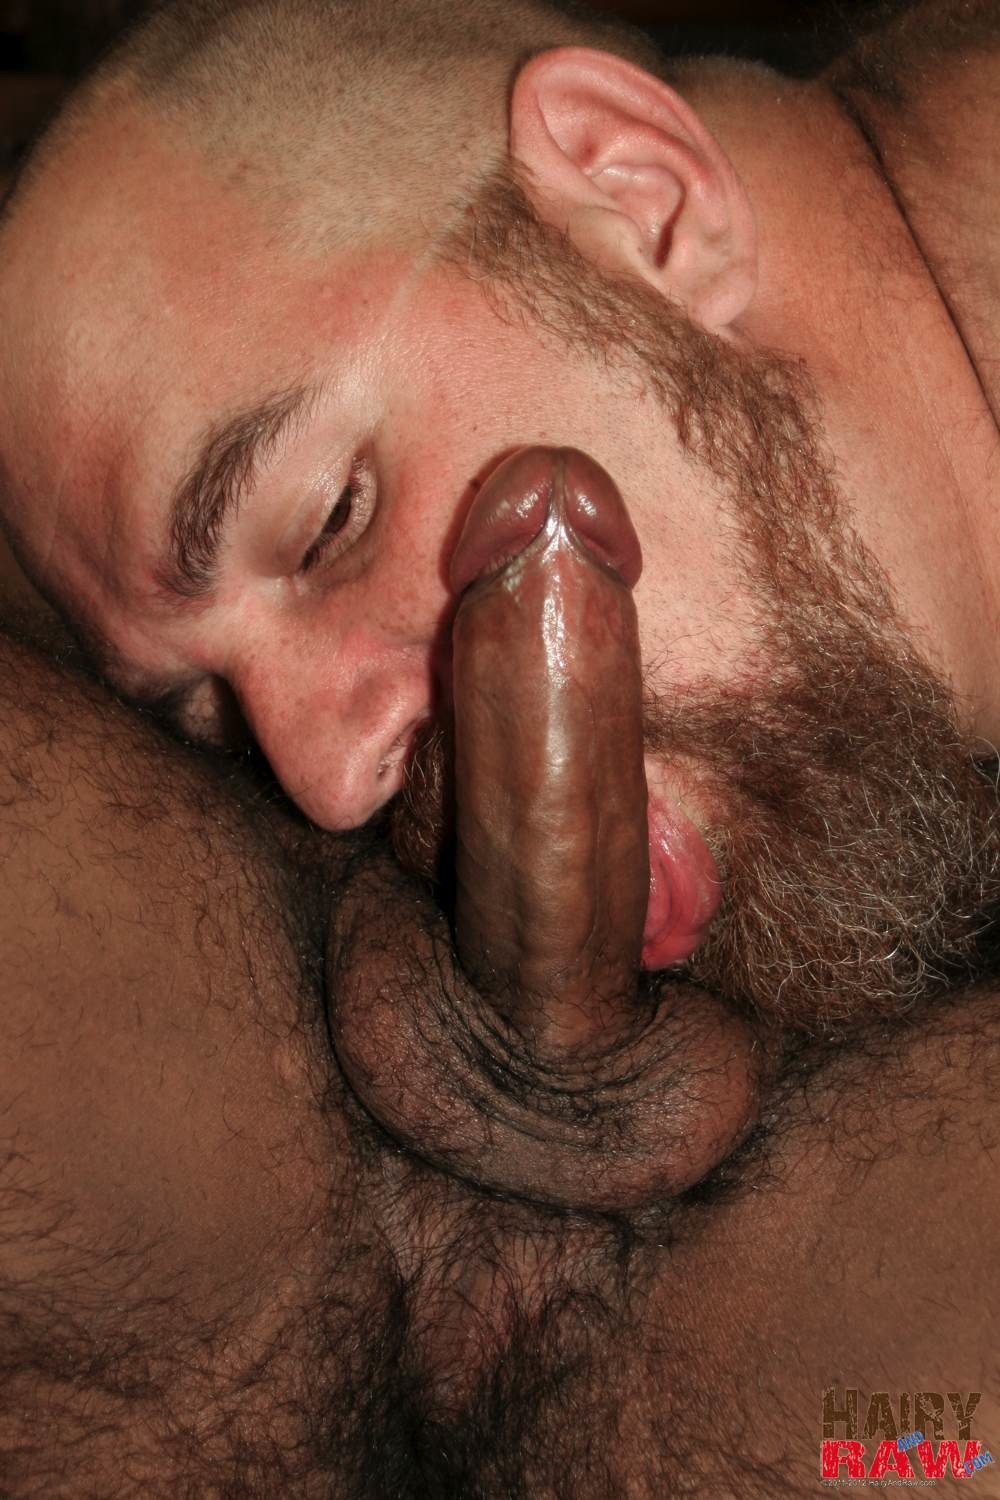 Hairy-and-Raw-DJ-Russo-and-Rico-Vega-Chubby-Bears-Barebacking-Amateur-Gay-Porn-05 Amateur Interracial Chubby Bears Barebacking Sex Pigs